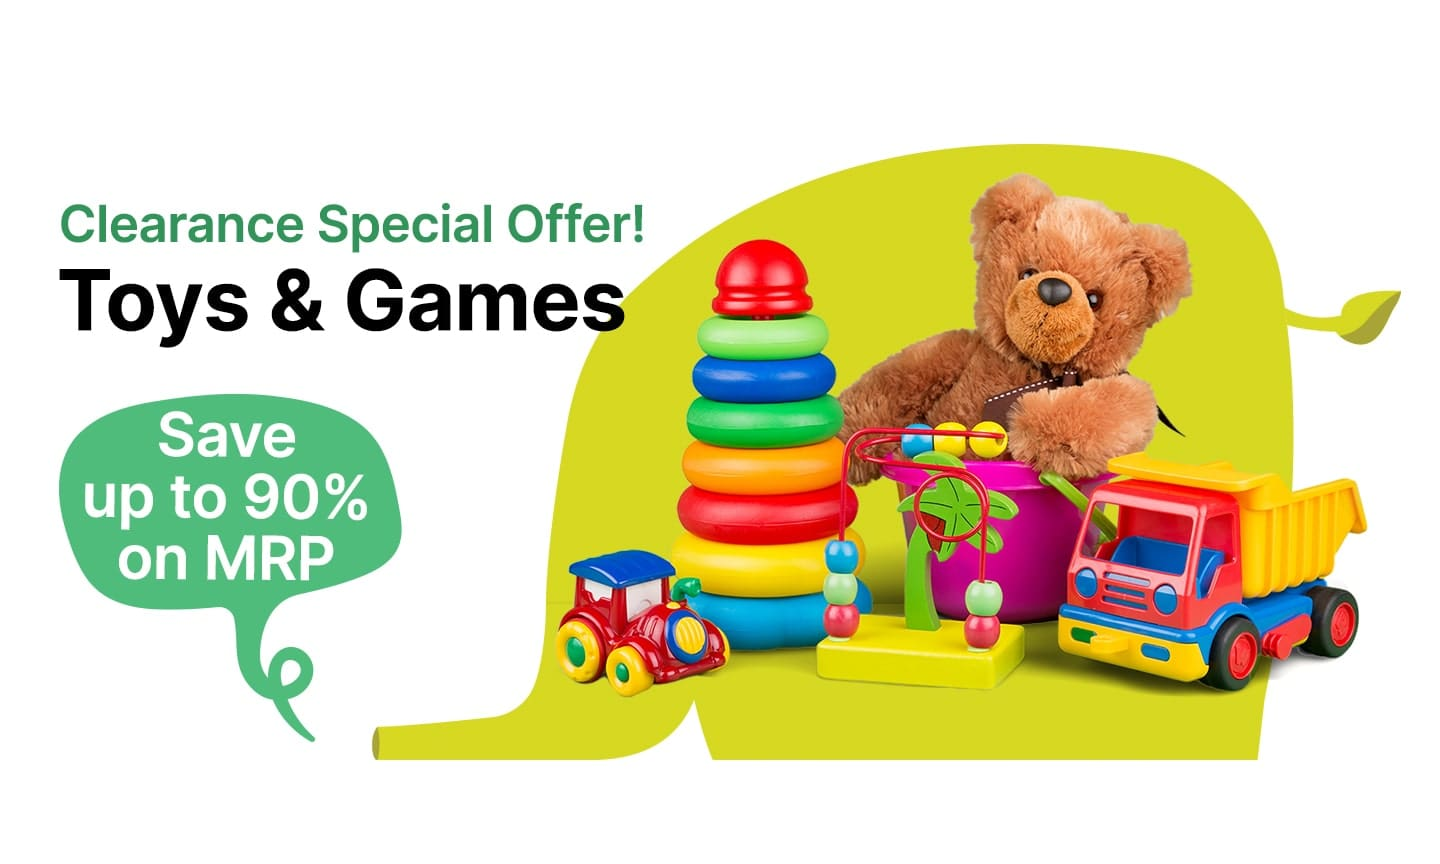 Toys & Games | Up to 90% Off